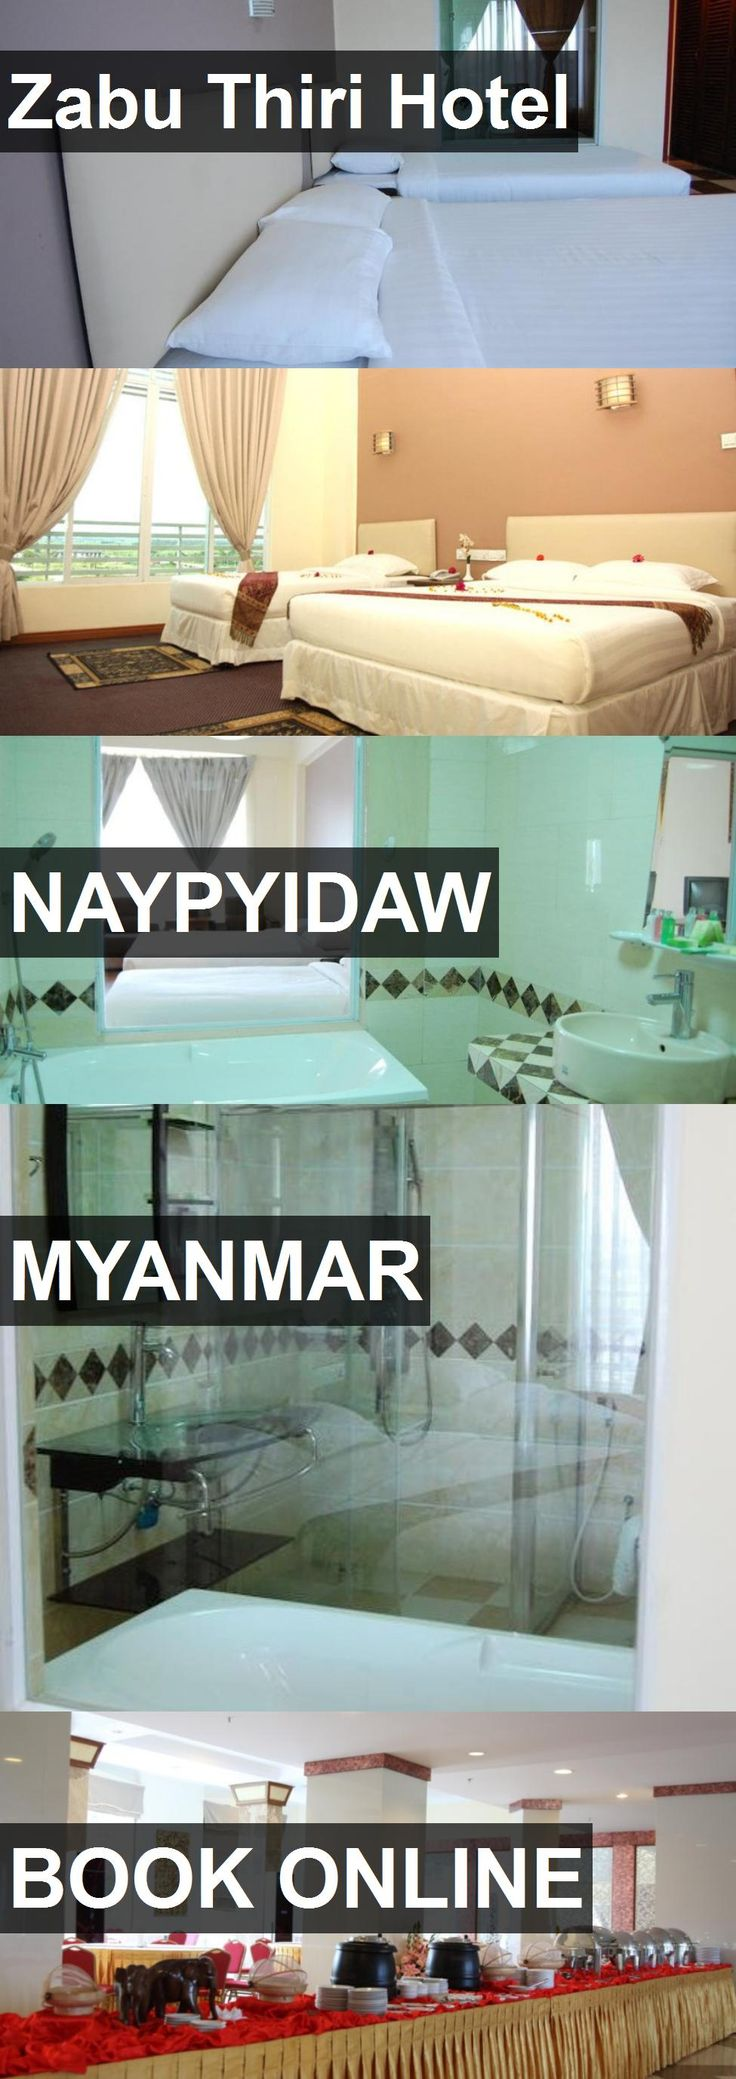 Zabu Thiri Hotel in Naypyidaw, Myanmar. For more information, photos, reviews and best prices please follow the link. #Myanmar #Naypyidaw #travel #vacation #hotel